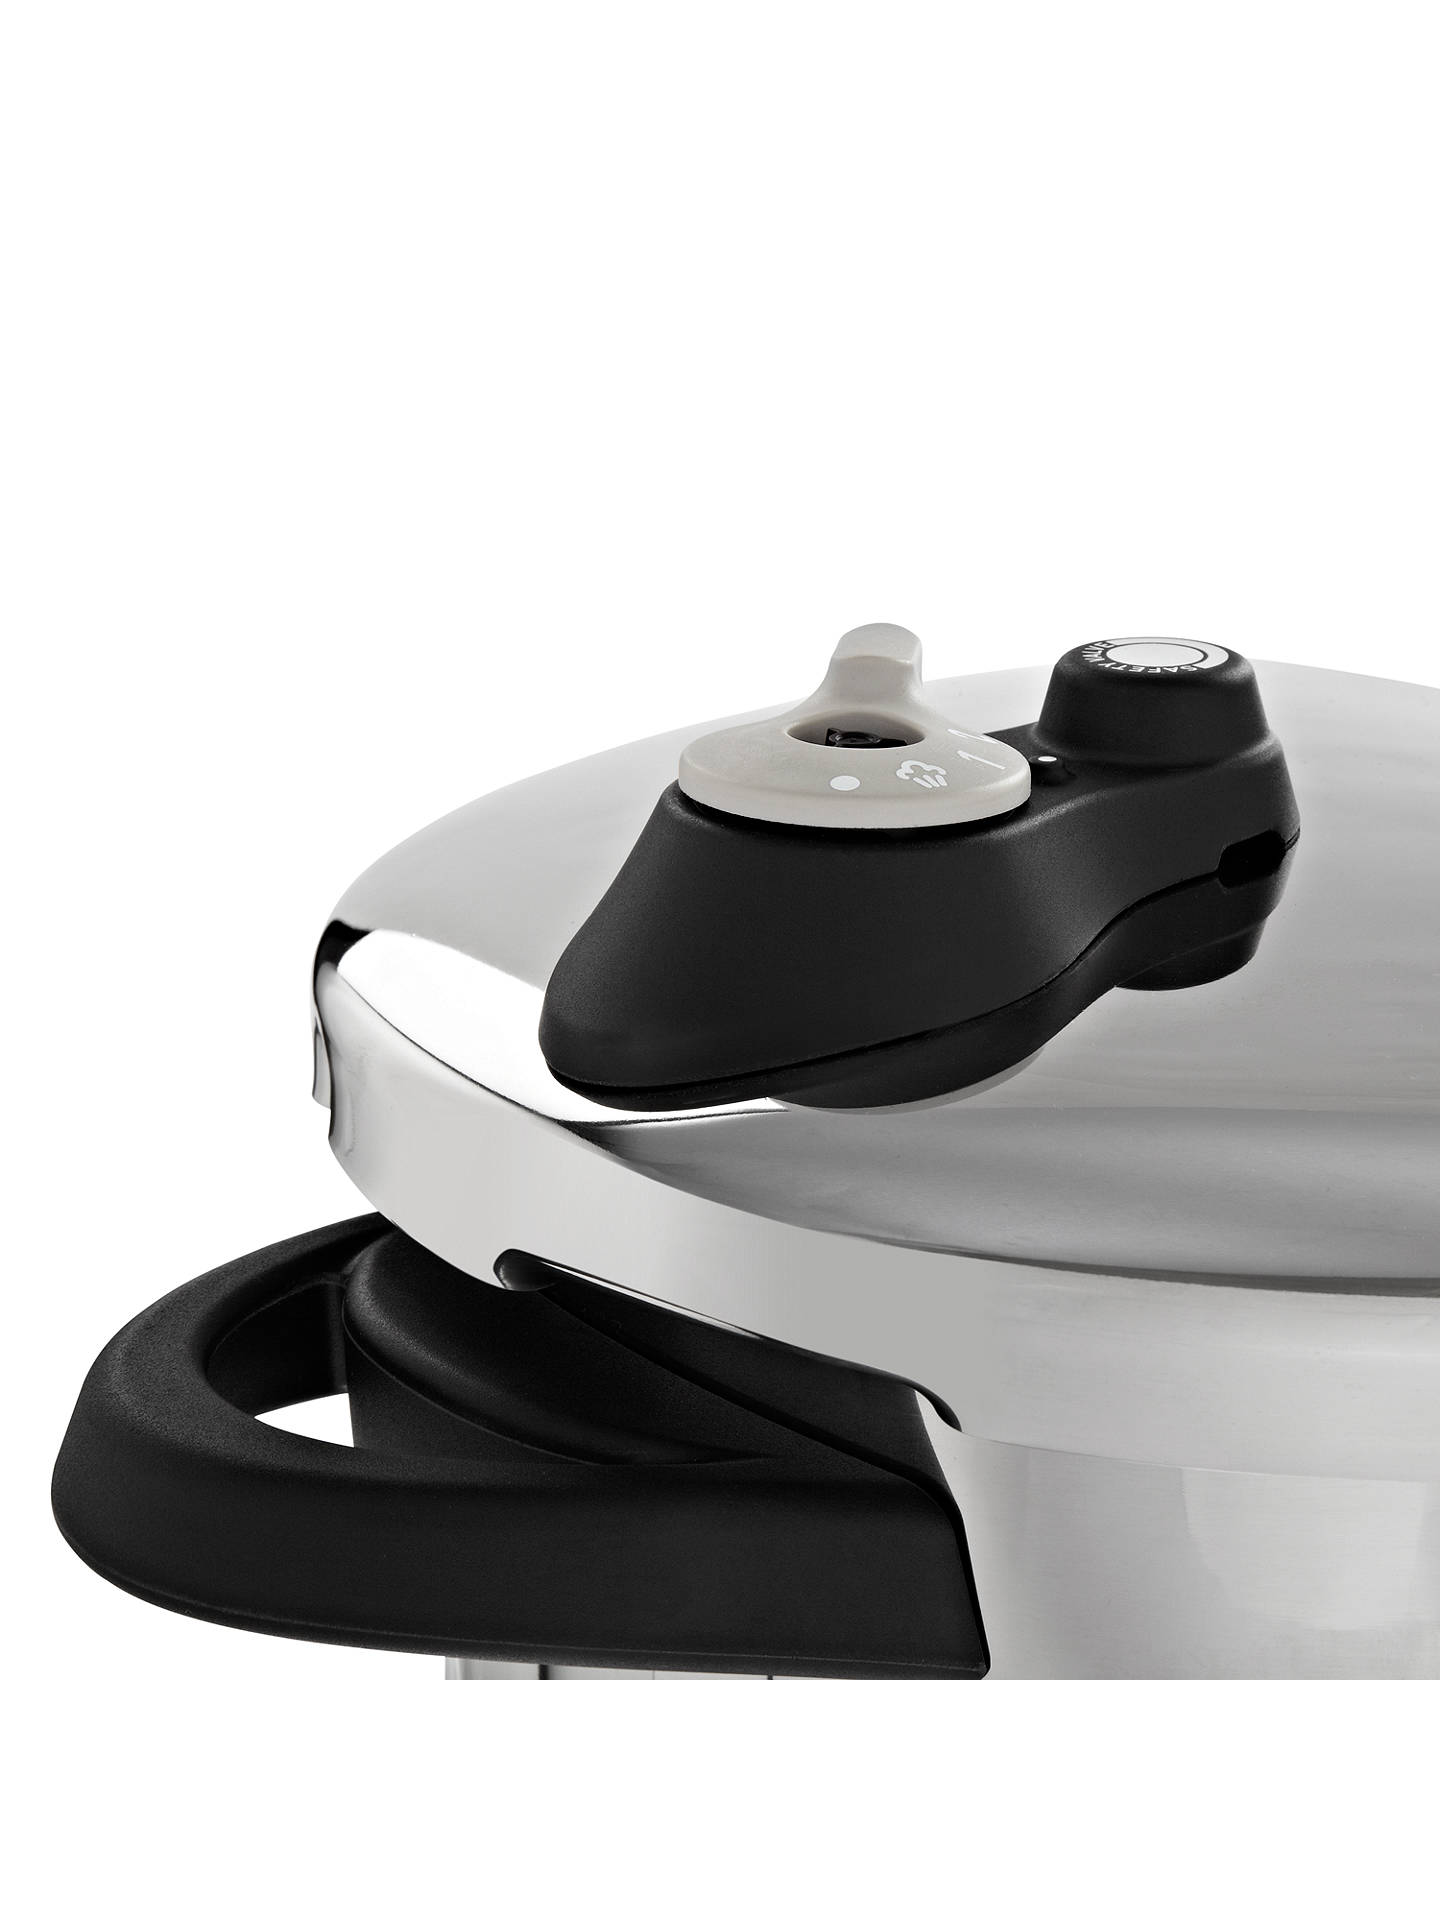 tefal secure 5 pressure cooker manual